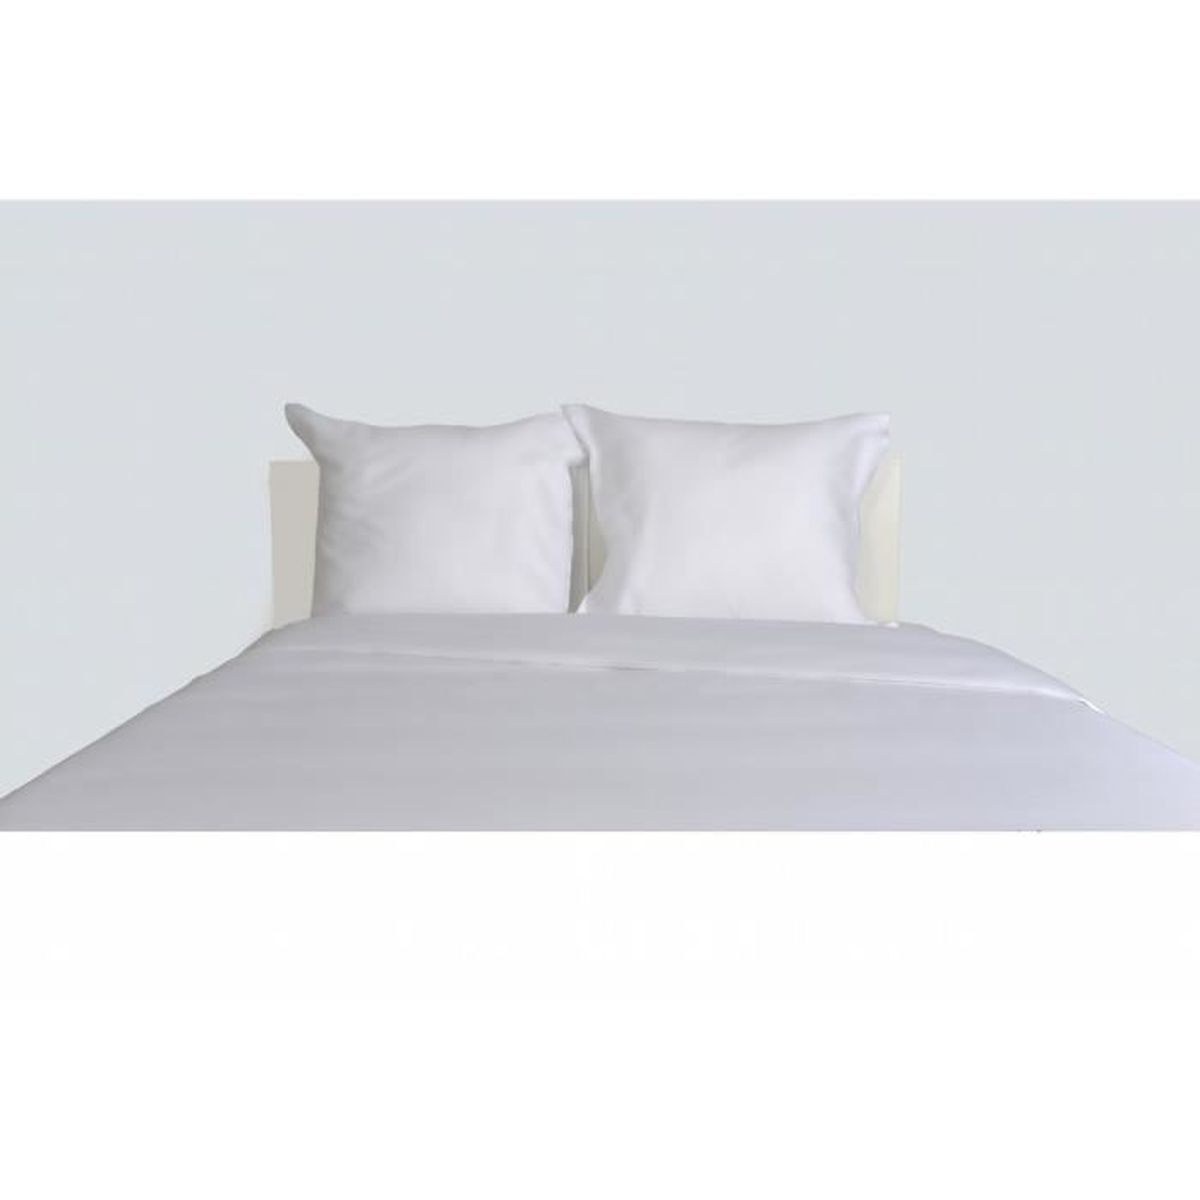 drap housse percale 140x190 blanc achat vente drap housse percale 140x190 blanc pas cher. Black Bedroom Furniture Sets. Home Design Ideas